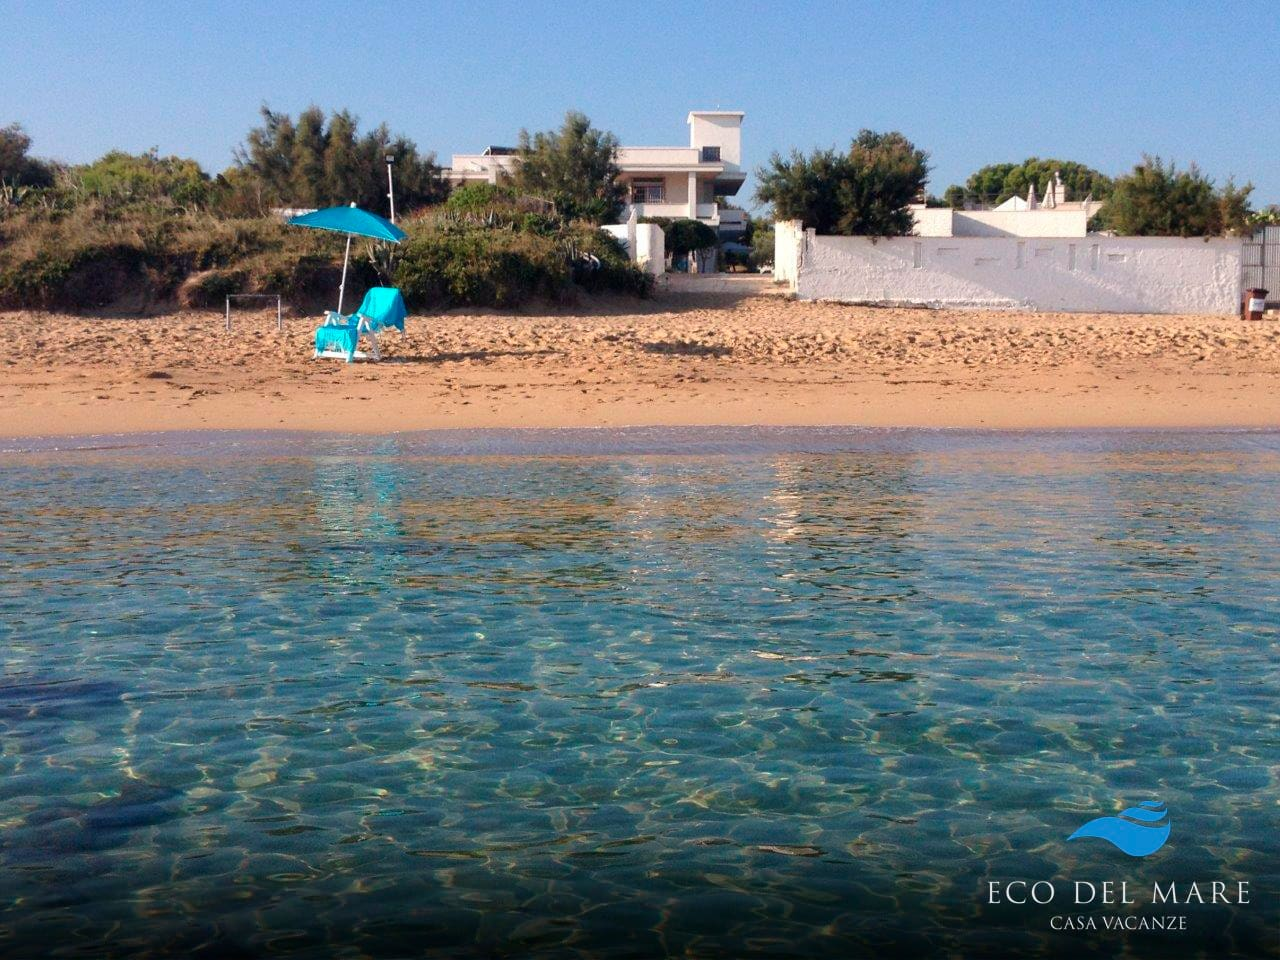 The holiday home 'ECO DEL MARE' view from the sea.